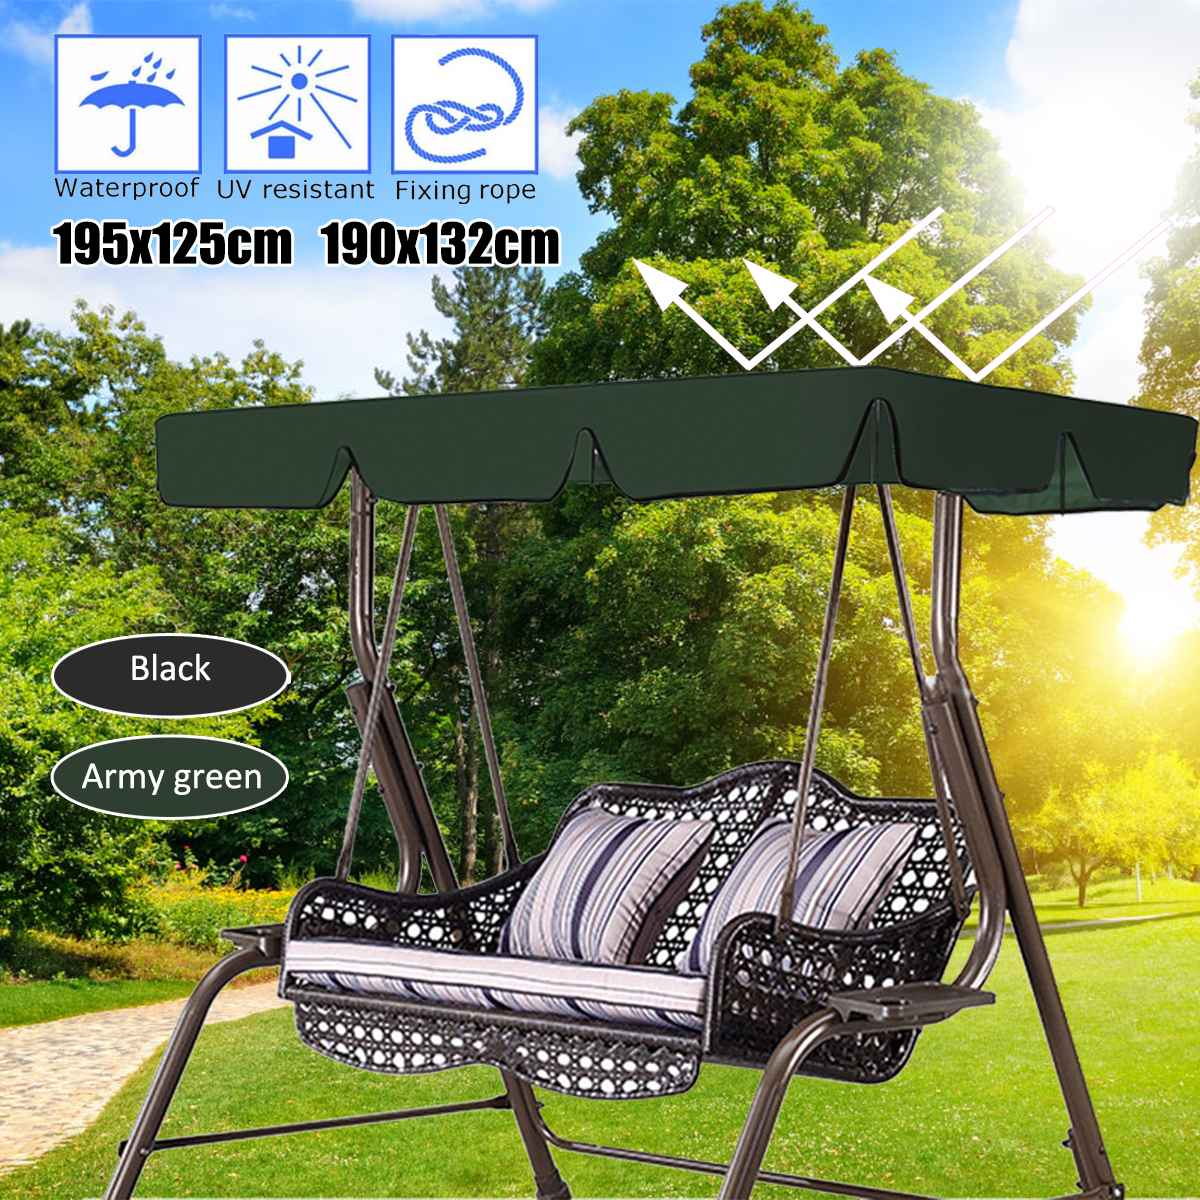 2 3 Seats Waterproof Swing Chair Top Cover Outdoor Canopy